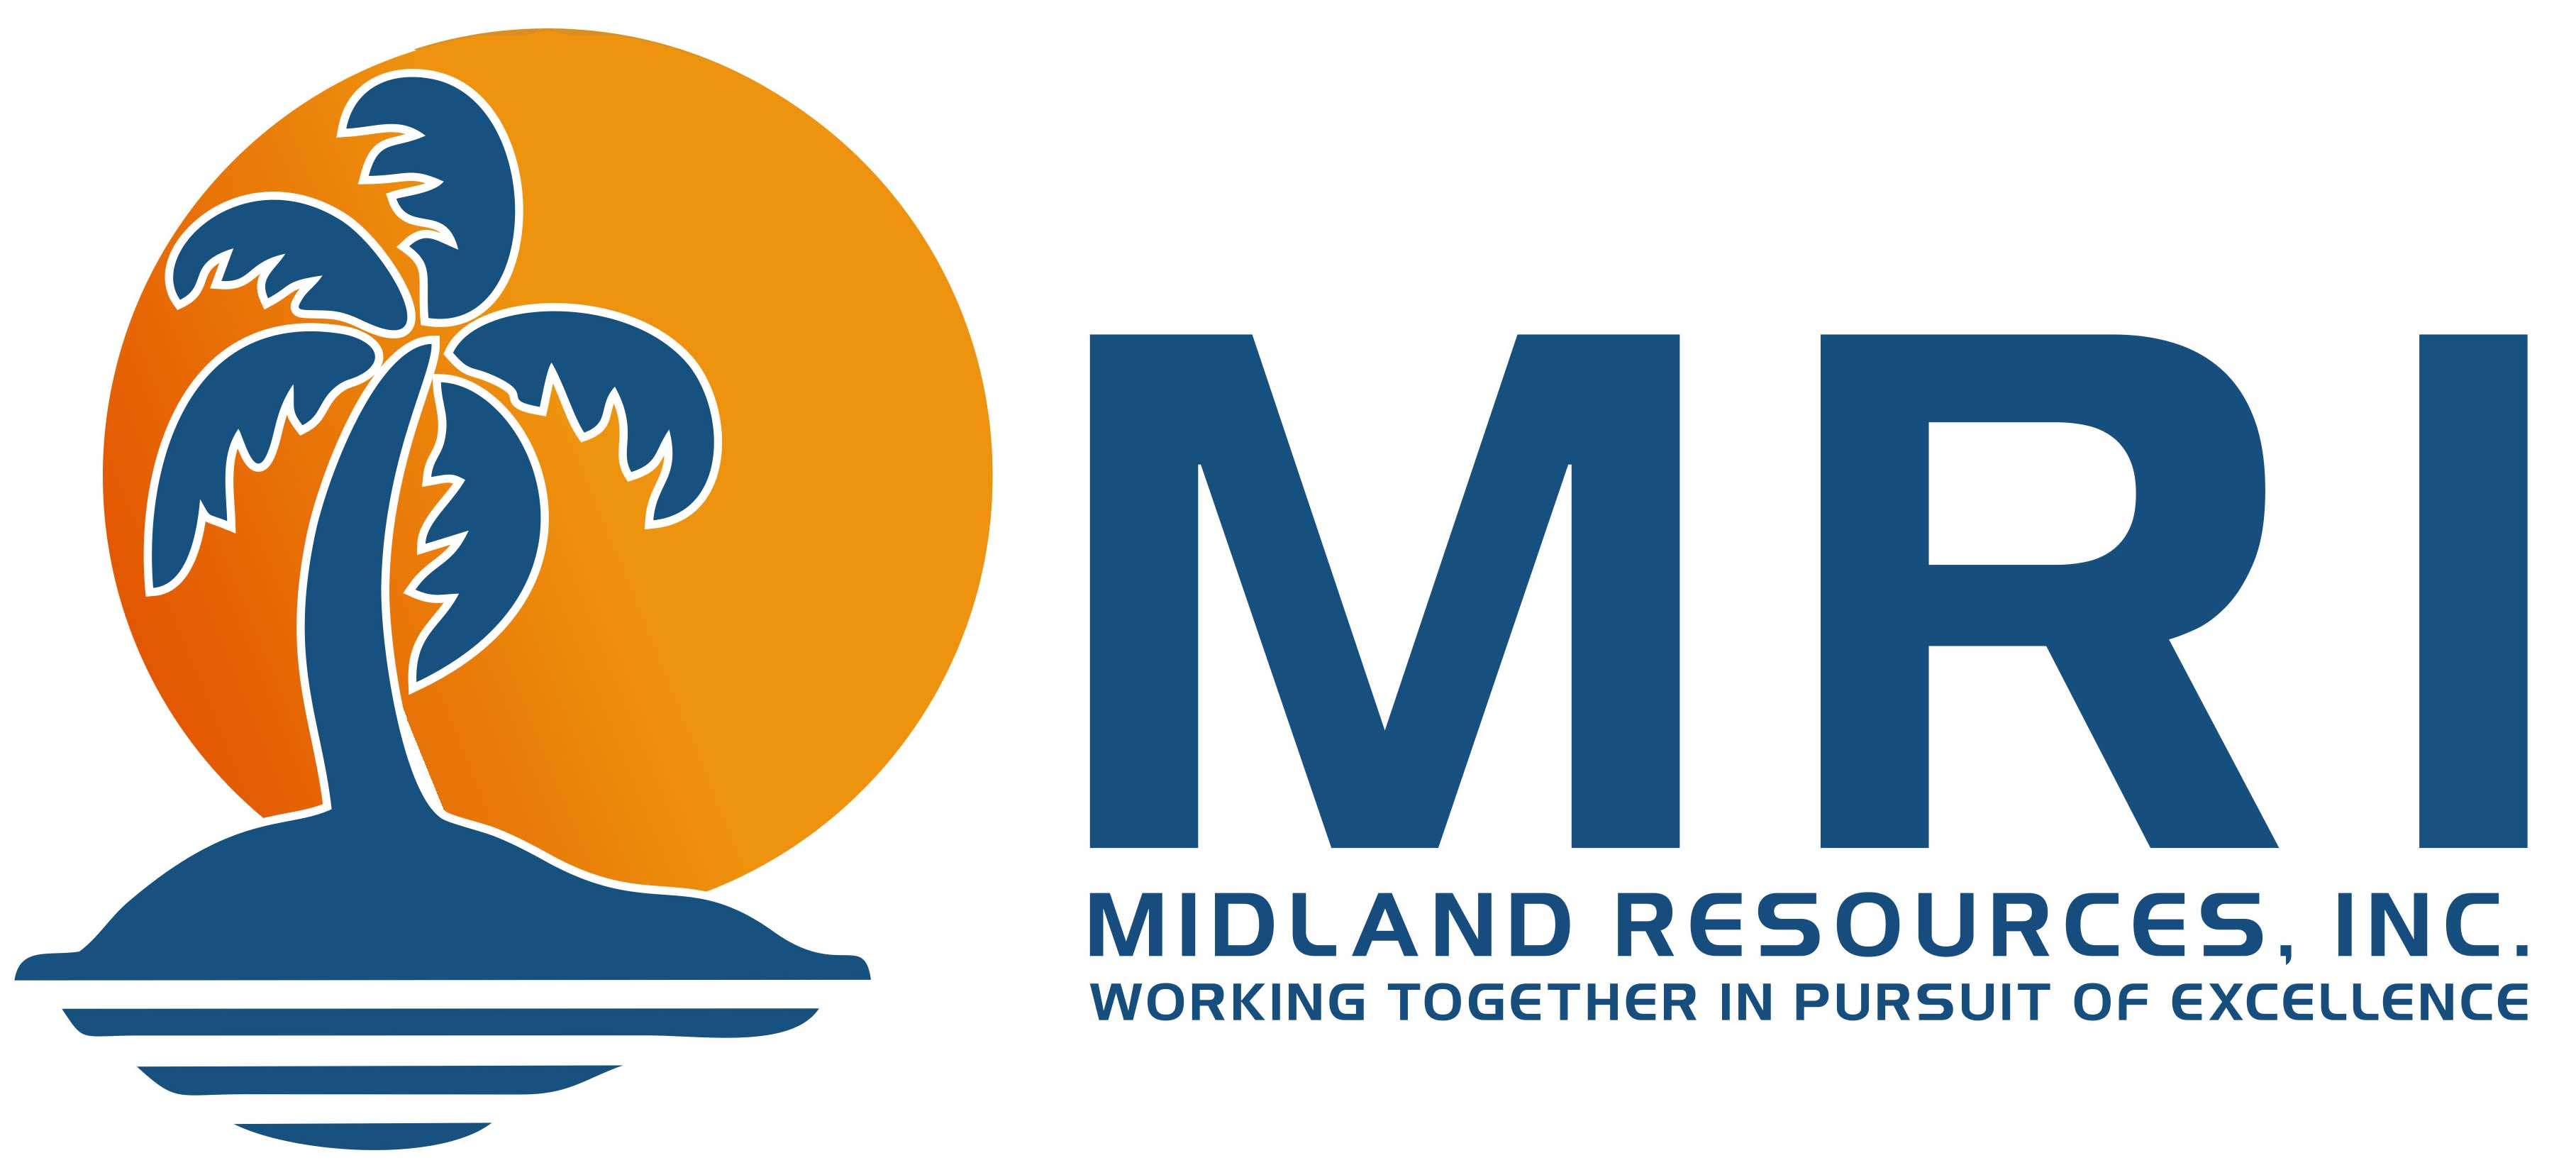 Midland Resources, Inc